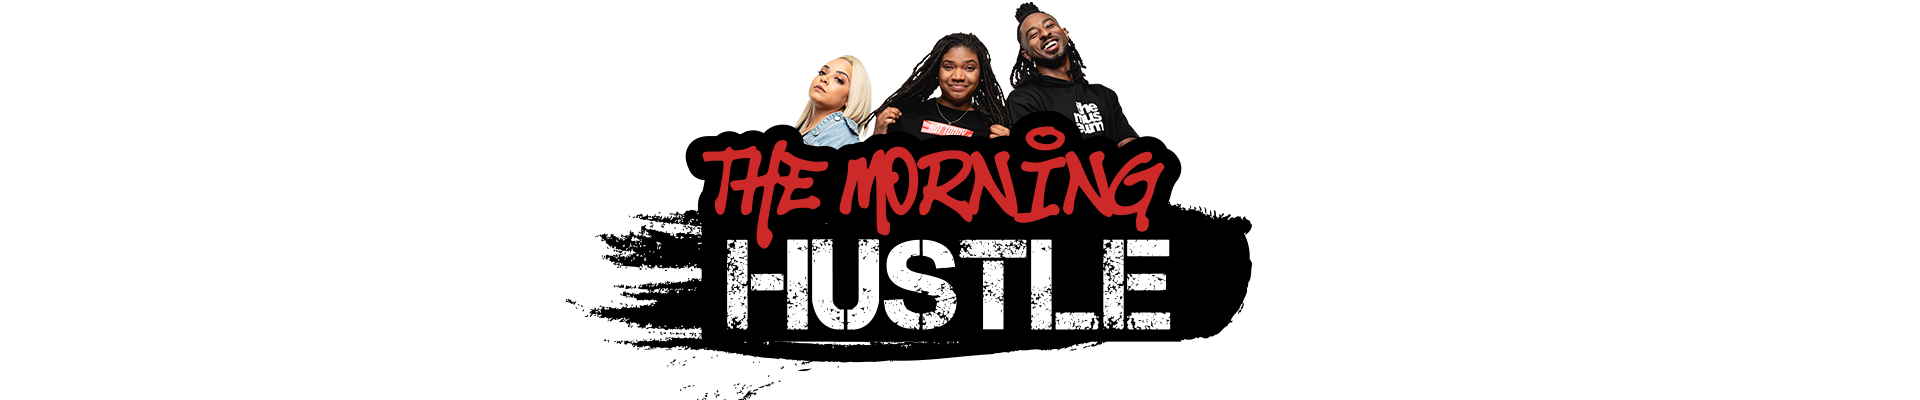 The Morning Hustle Logo